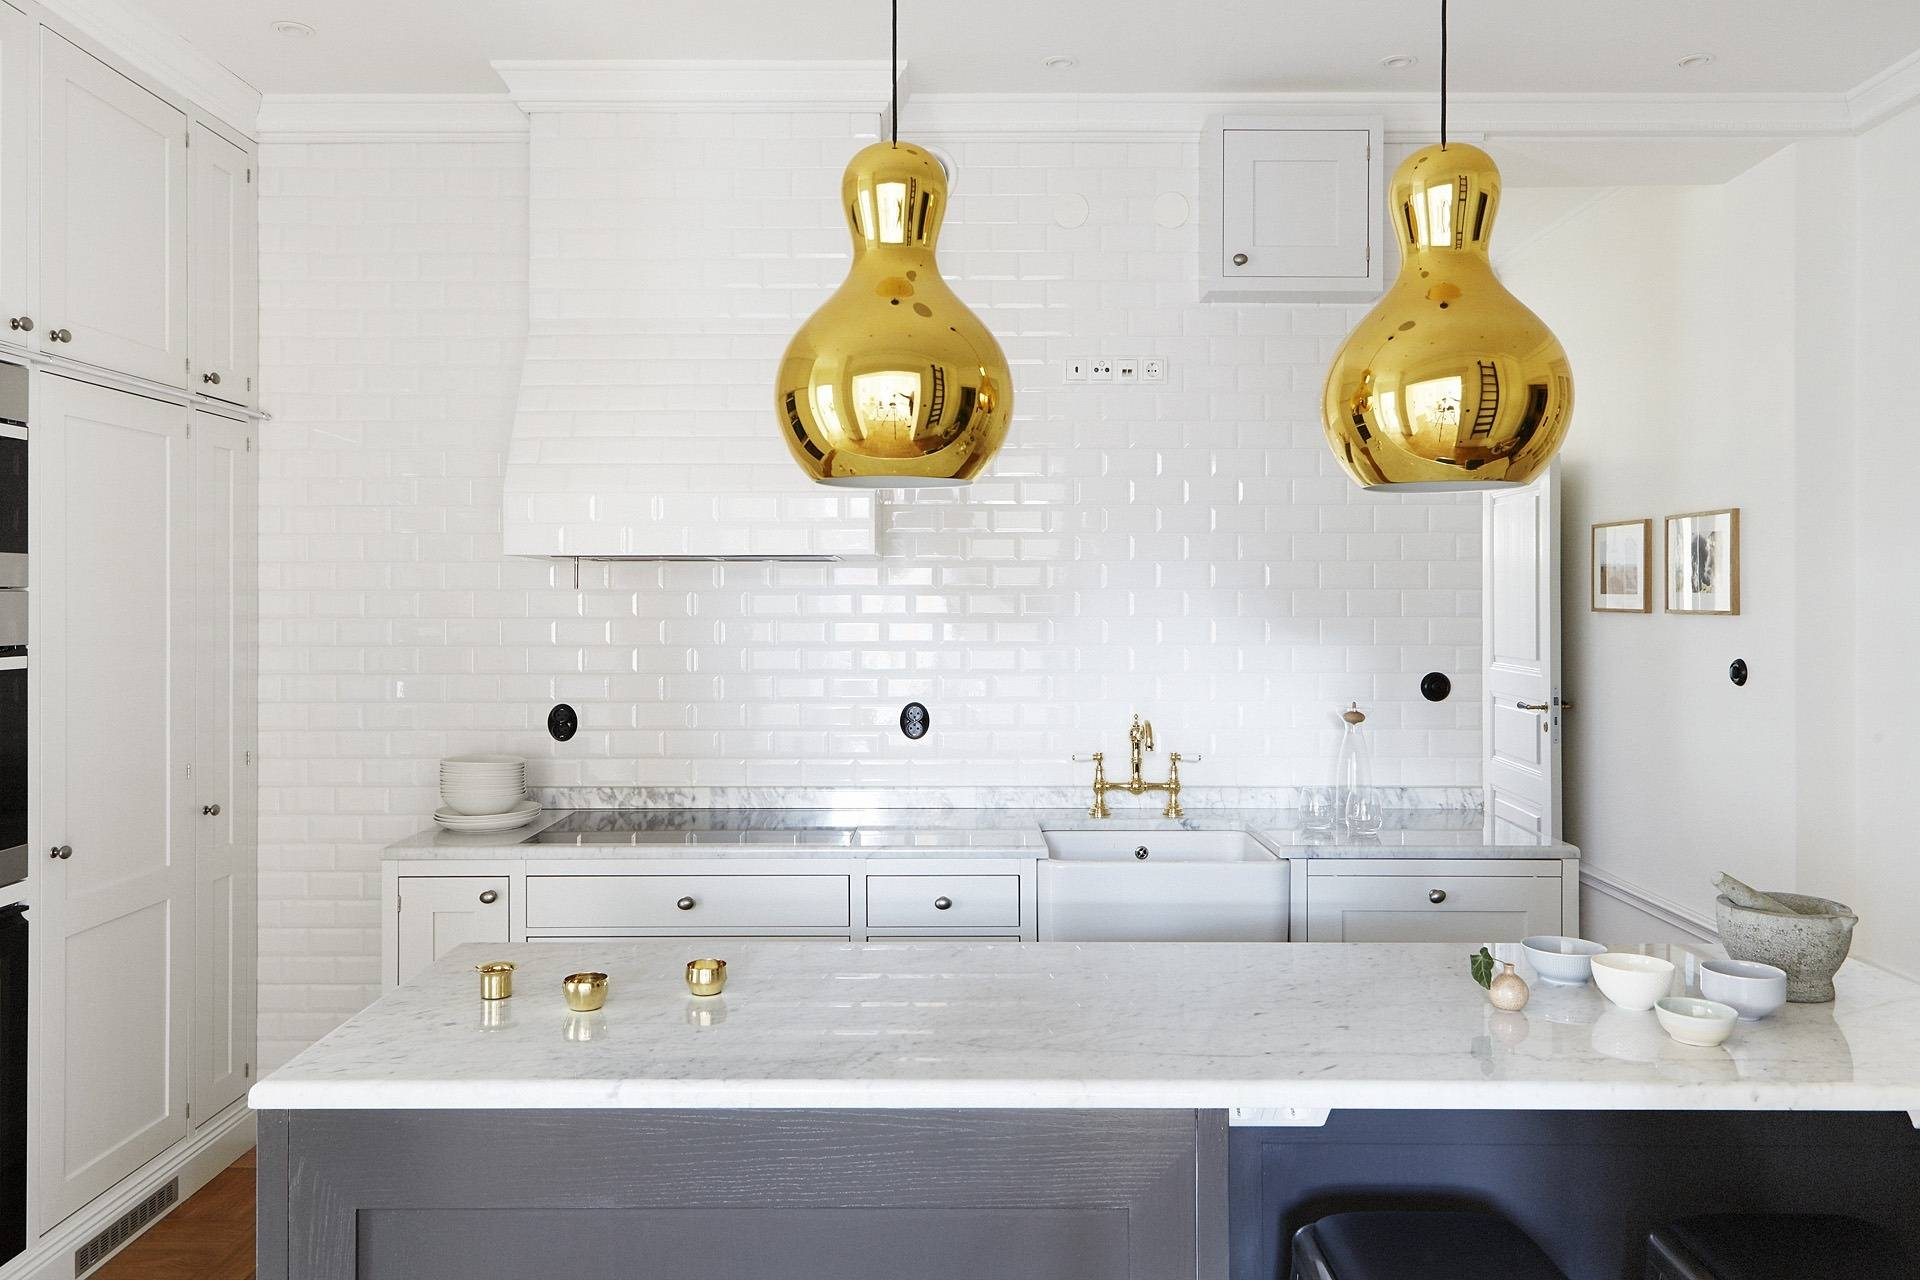 Kitchen Islands : Kitchen Island Lights With Large Hicks Pendants regarding Large Hicks Pendants (Image 11 of 15)